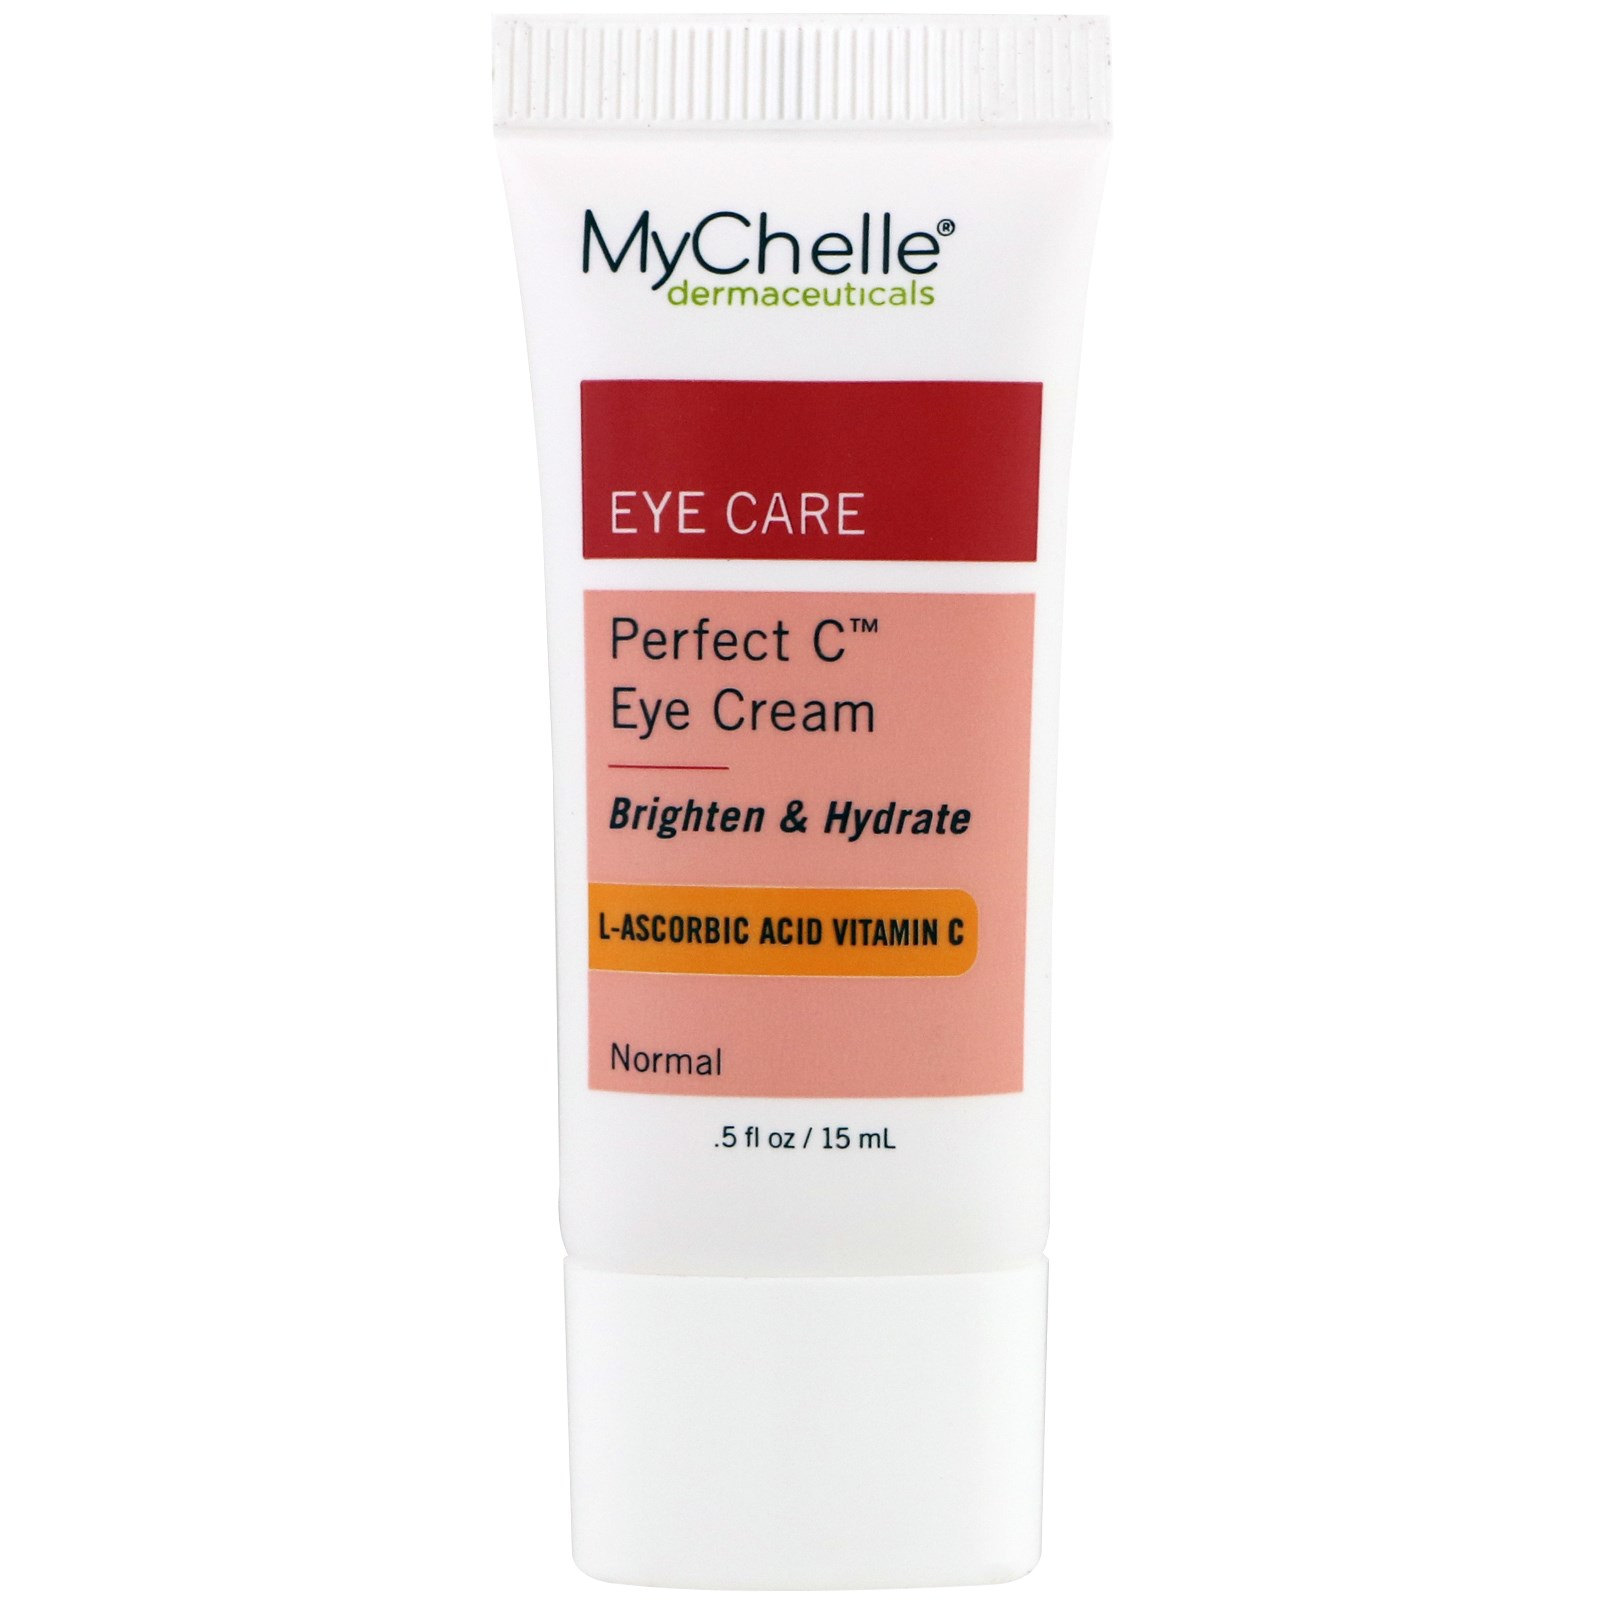 MyChelle Dermaceuticals, Perfect C Pro Serum, Normal, , .5 fl oz (pack of 1) Daggett & Ramsdell Acne Soap Facial 6 Pack